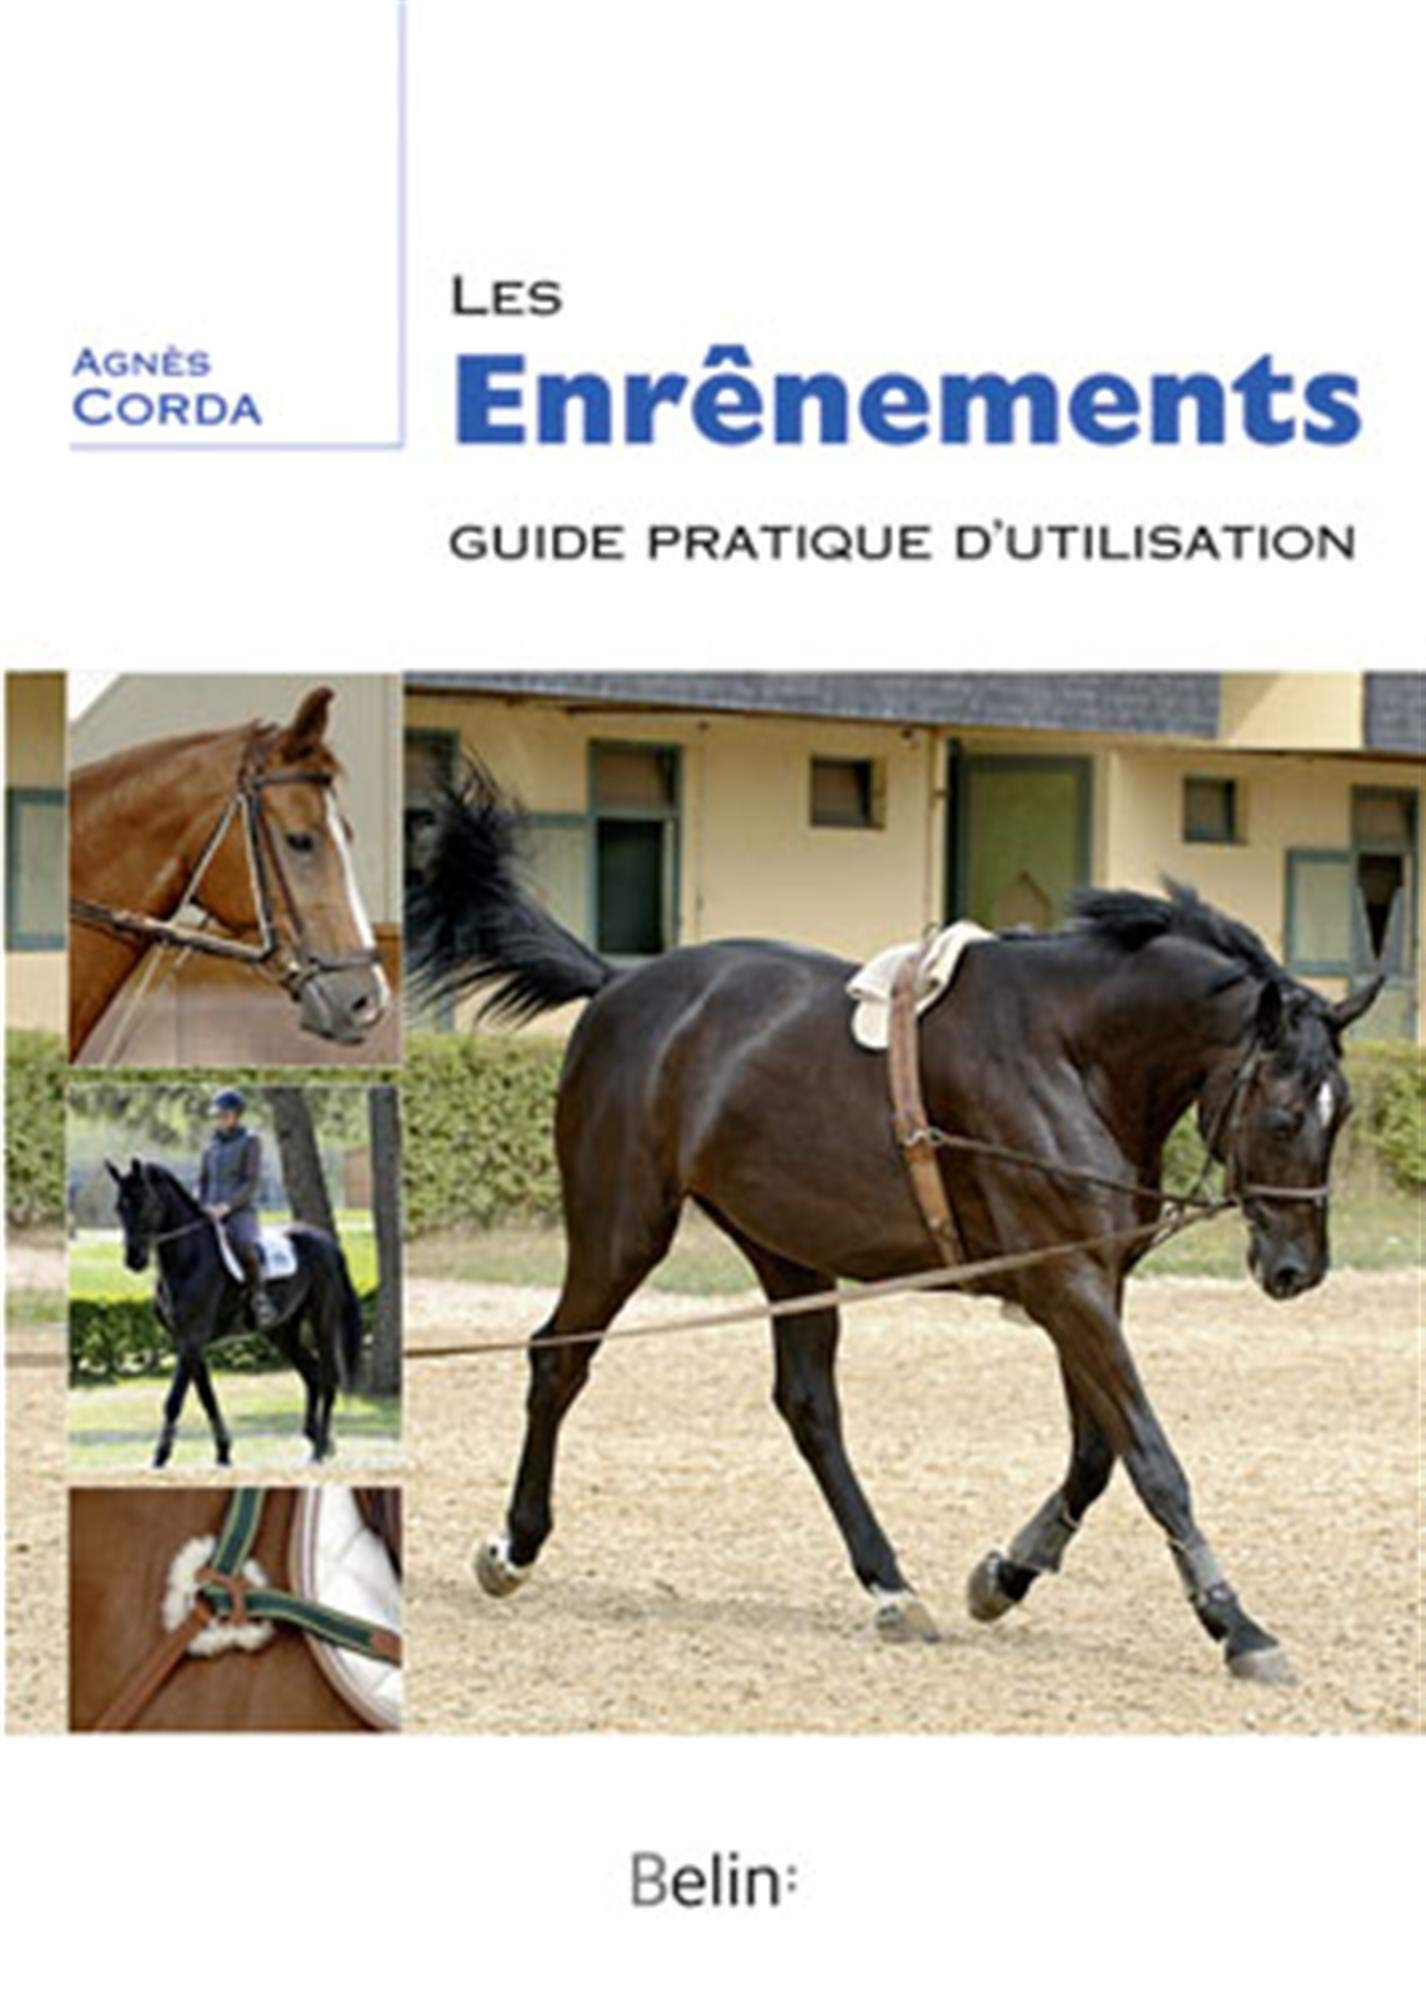 Download Les Enrênements - Guide Pratique D'utilisation 